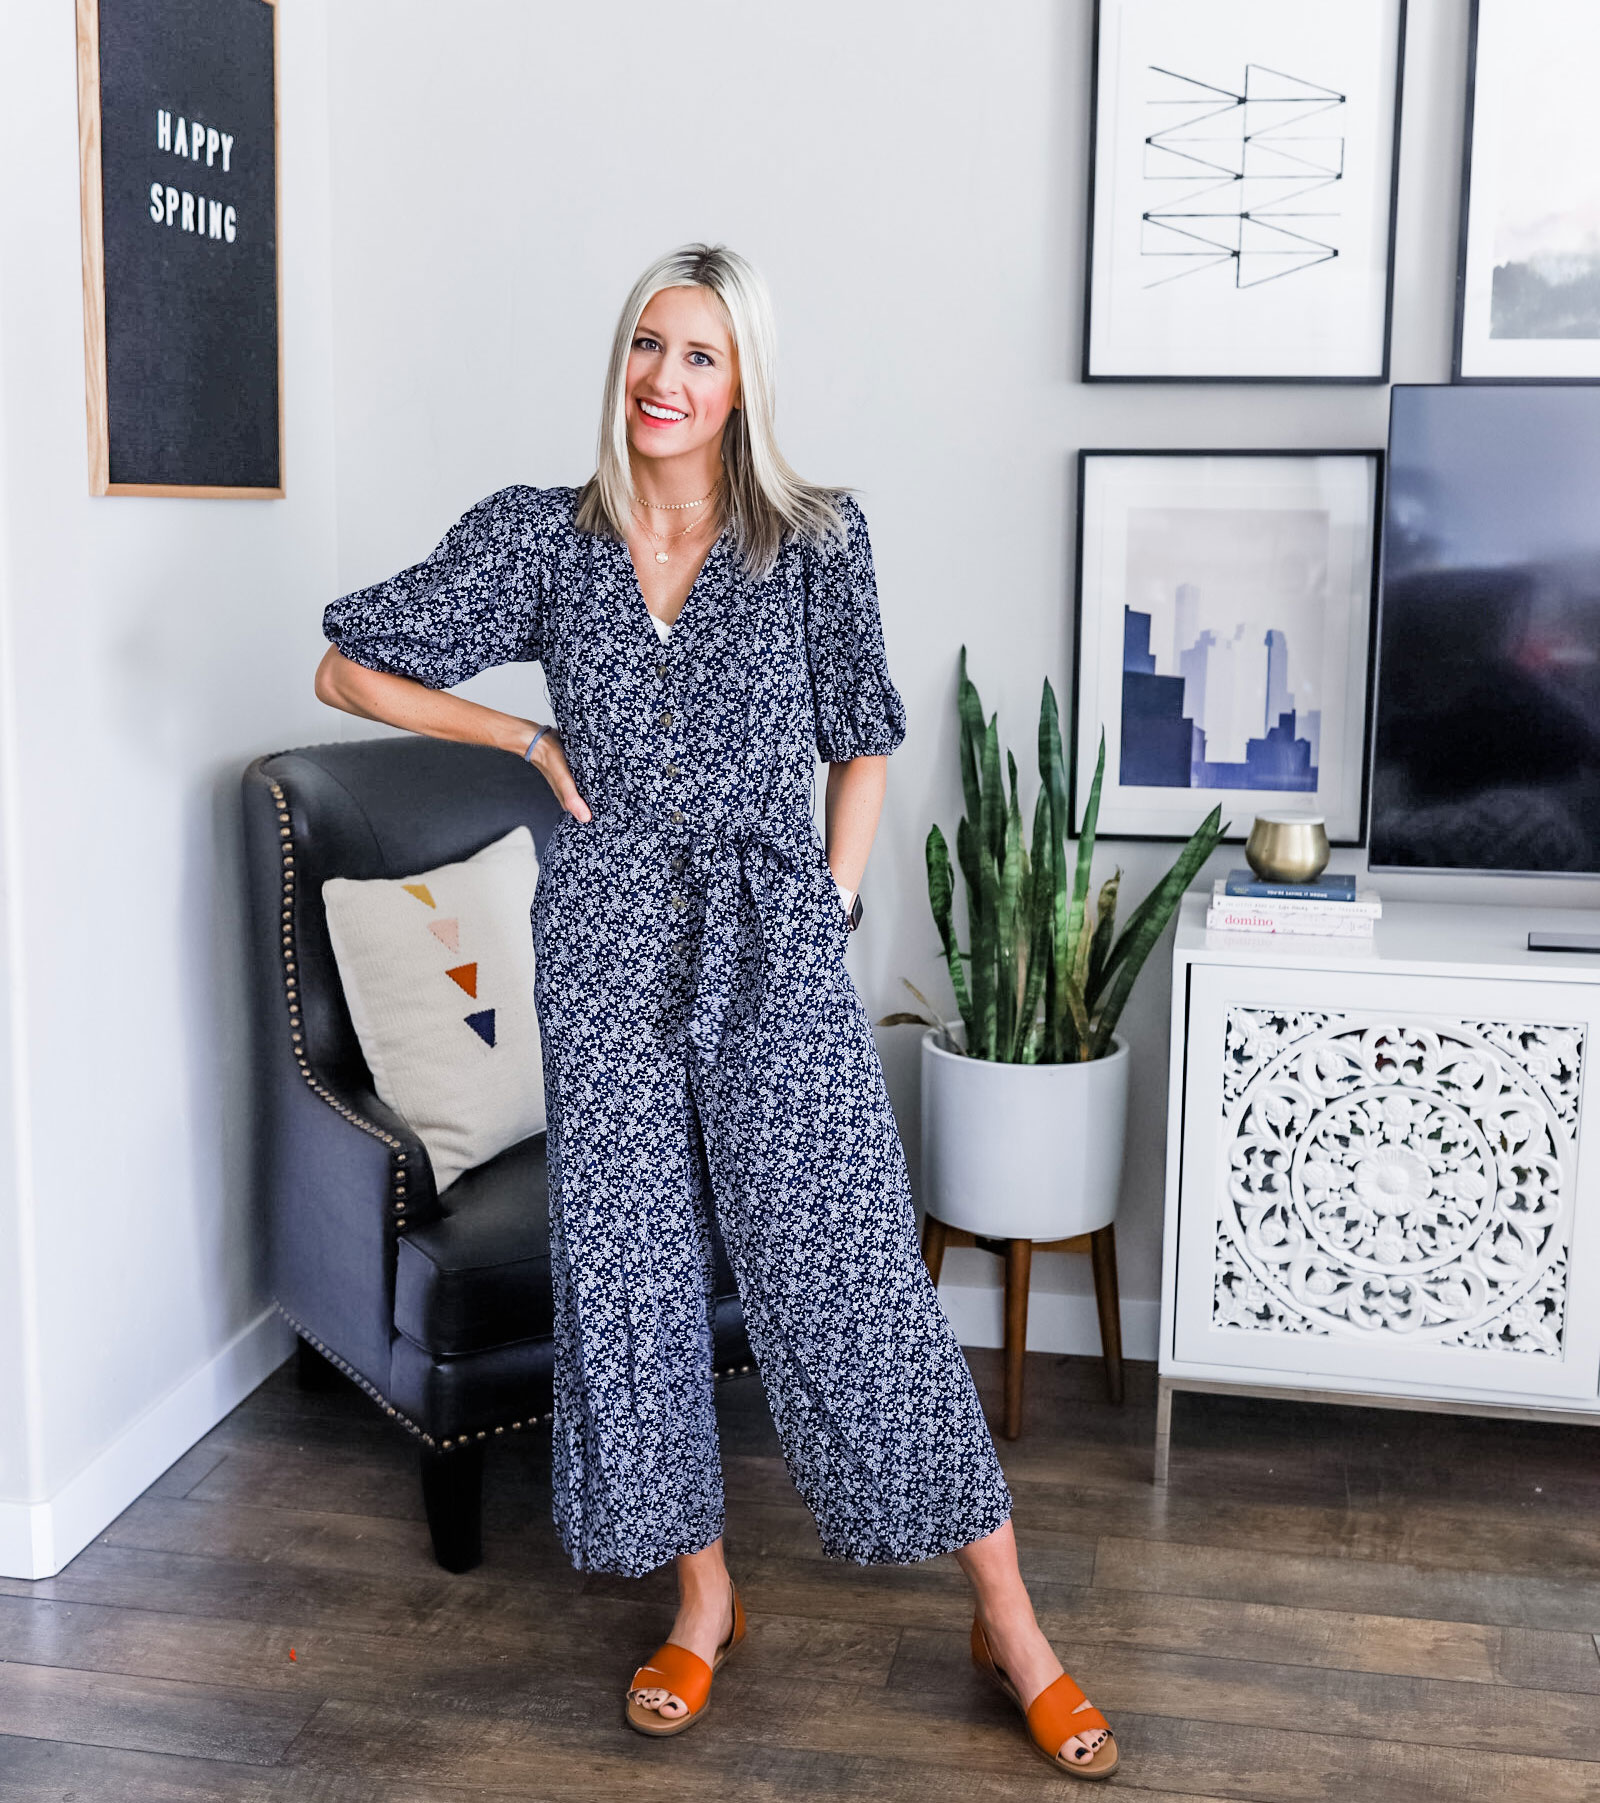 Spring Capsule Wardrobe Outfit Staples Under $40   Little Miss Fearless